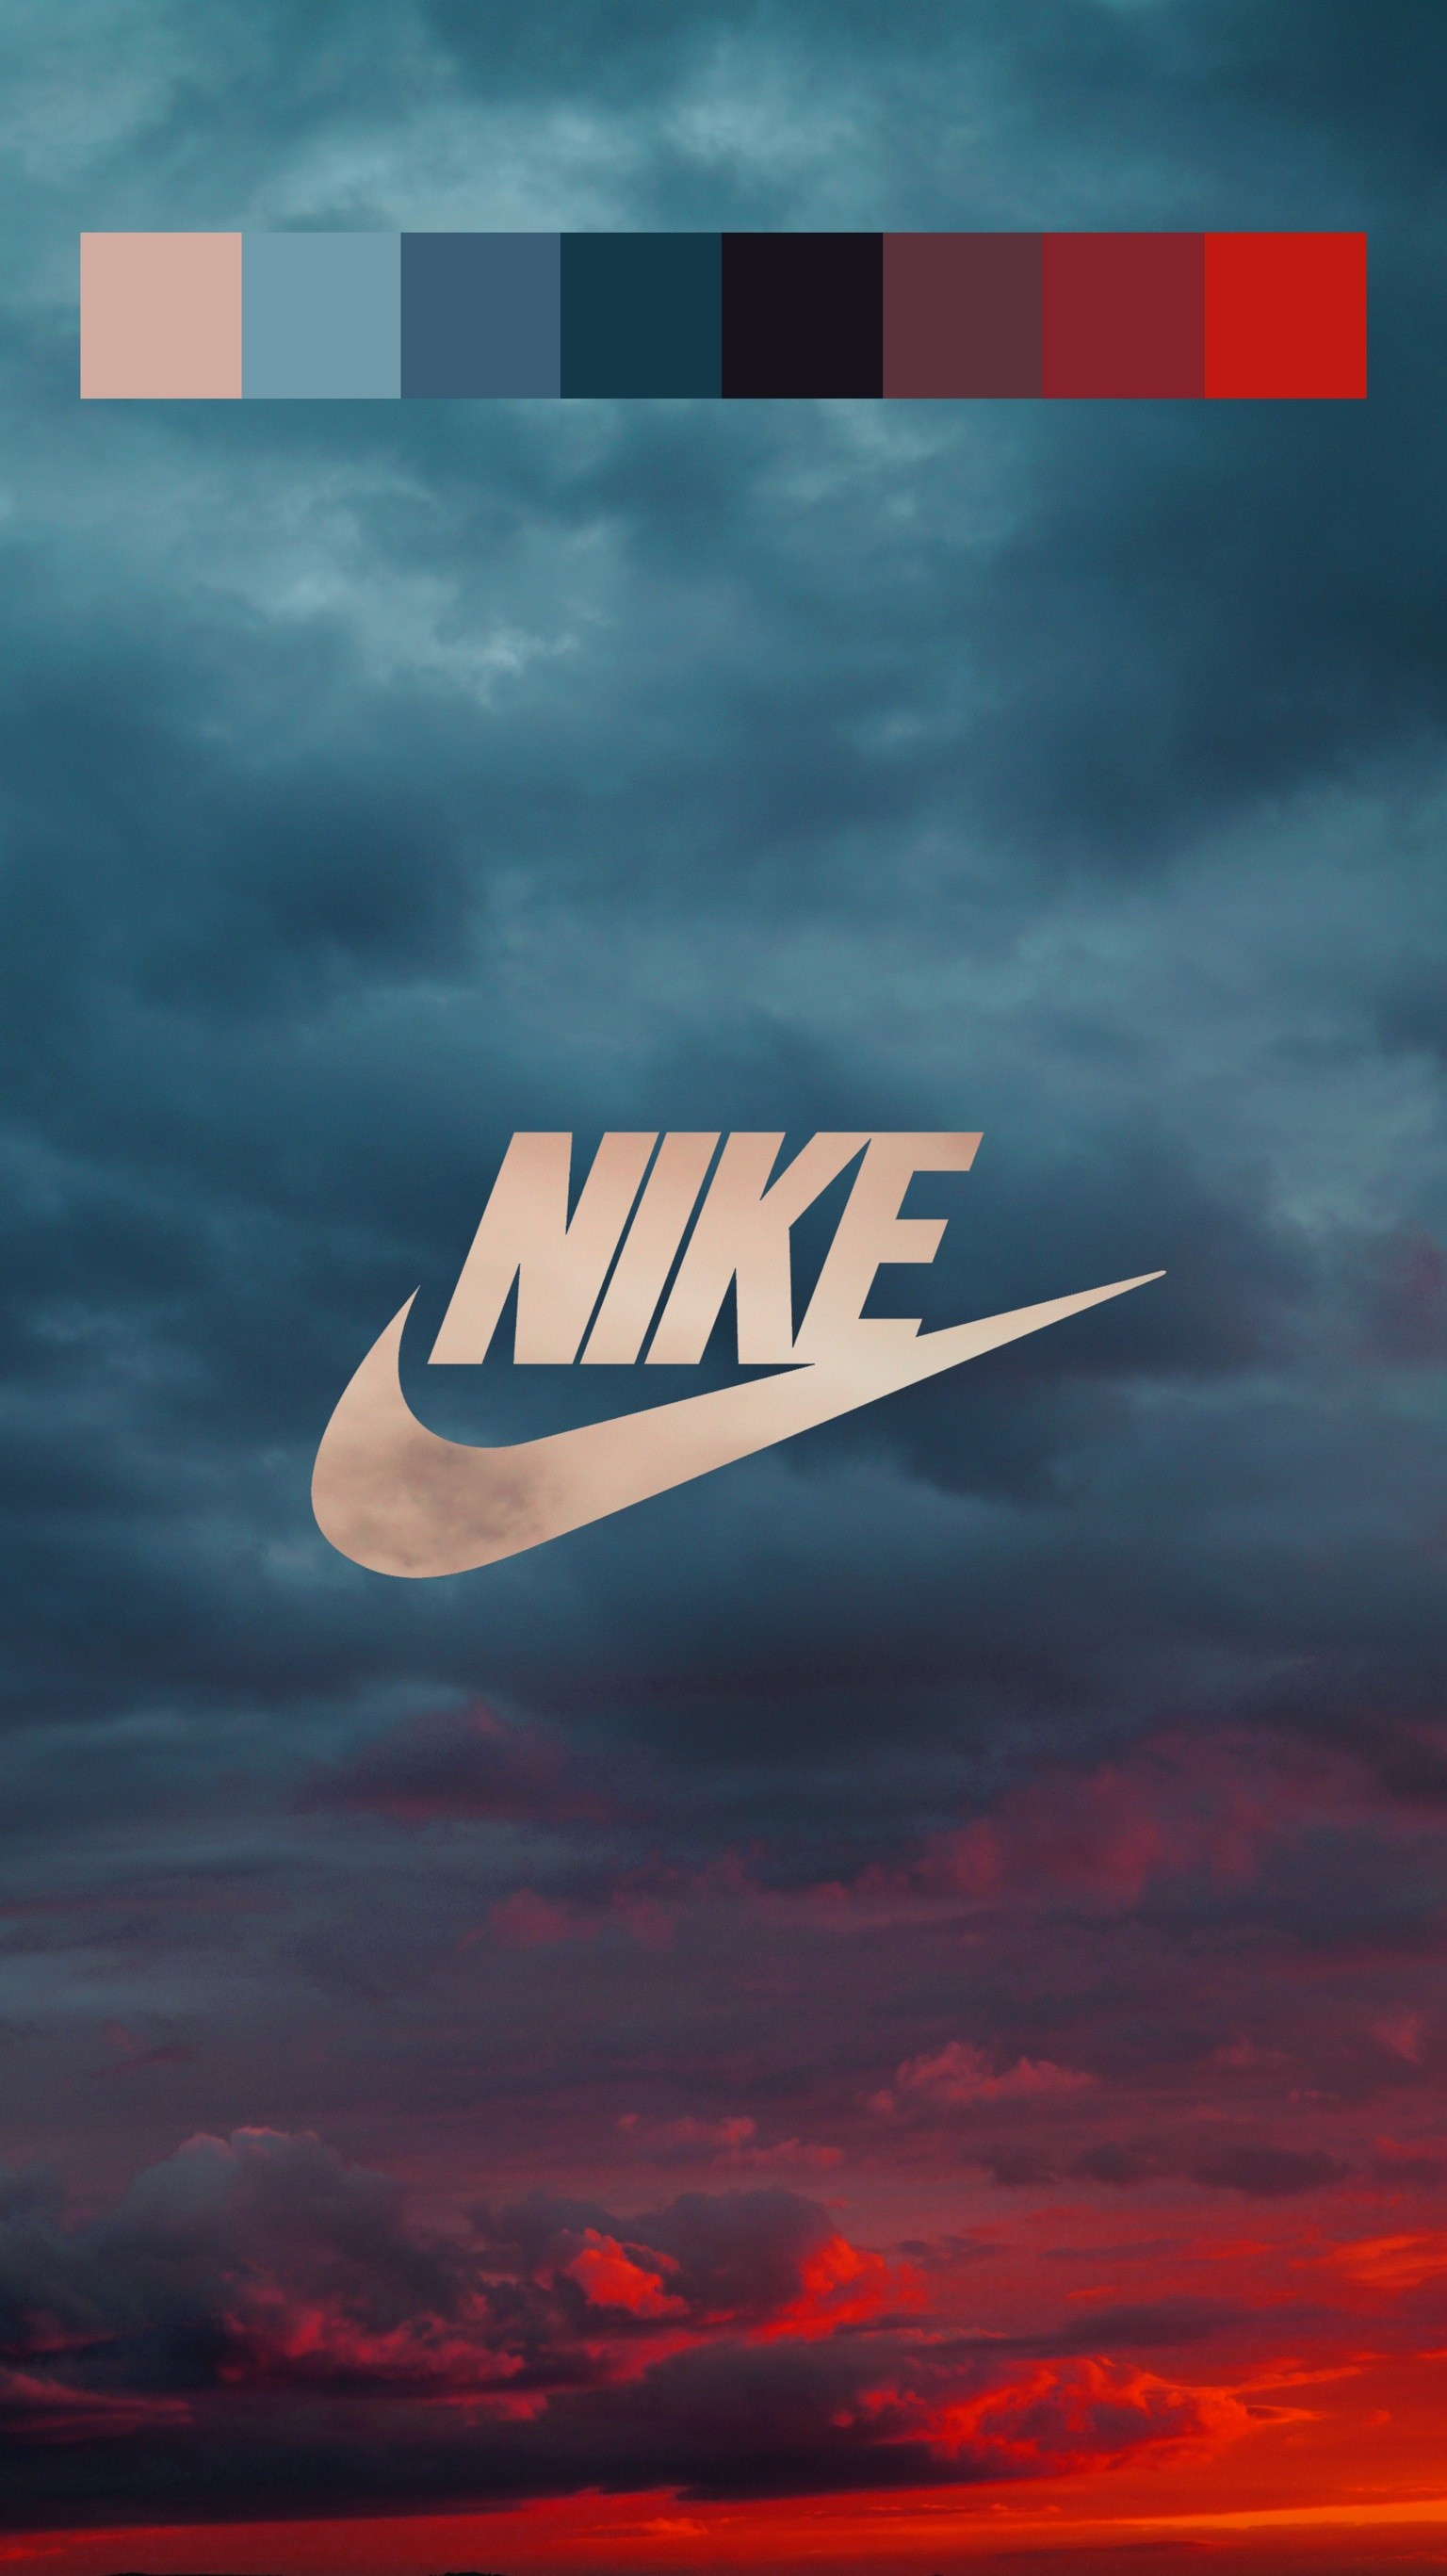 Nikes Wallpaper 69 Images